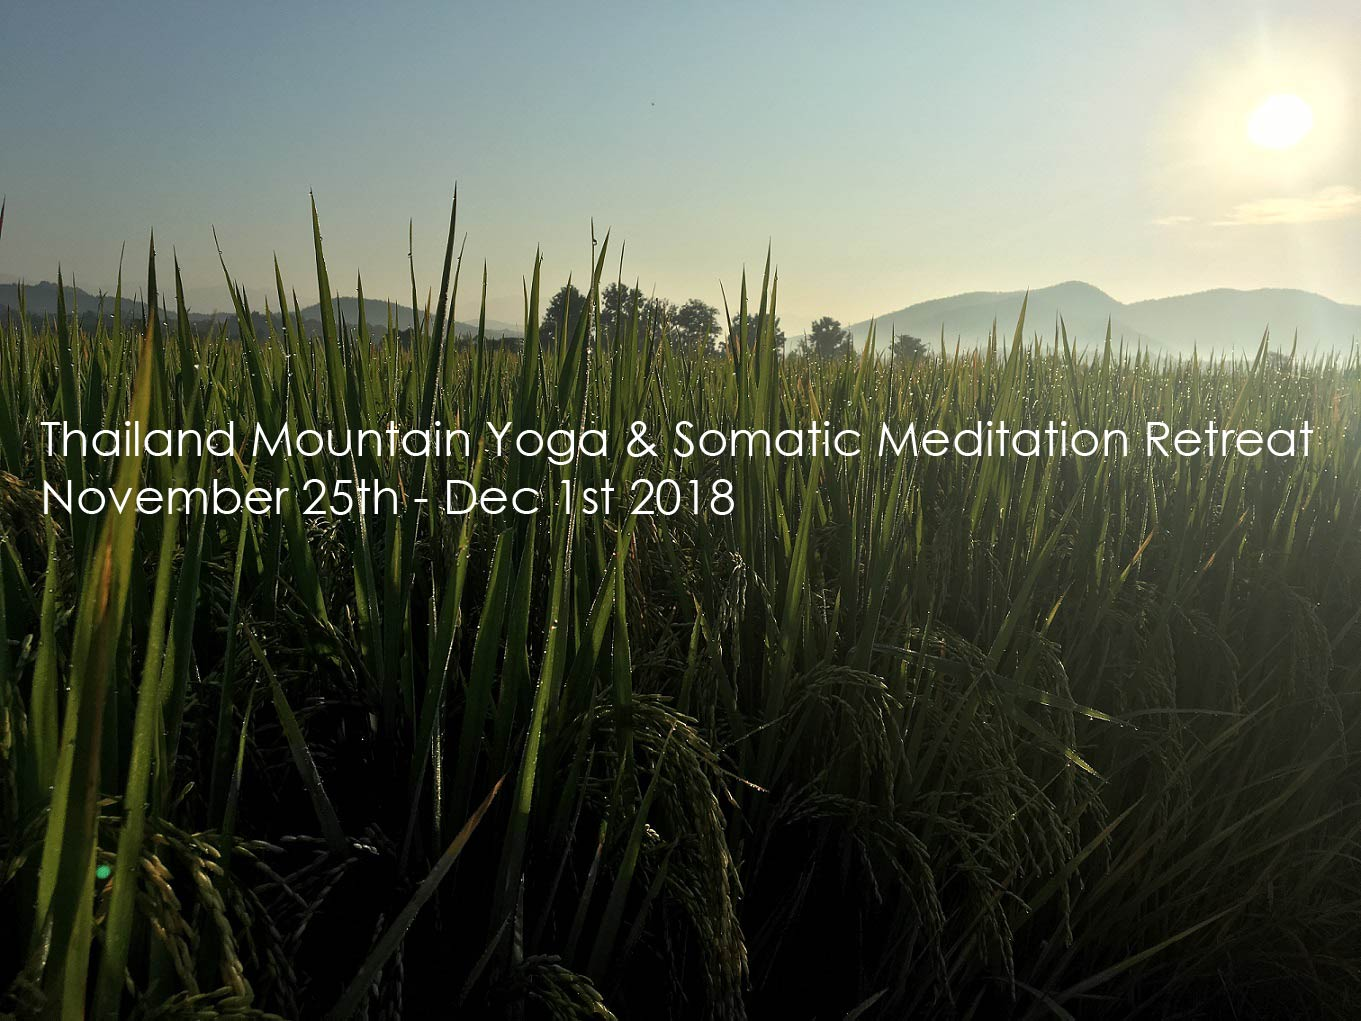 Somatic Meditation Yoga Retreat at Mala Dhara Eco Resort Chiang Mai